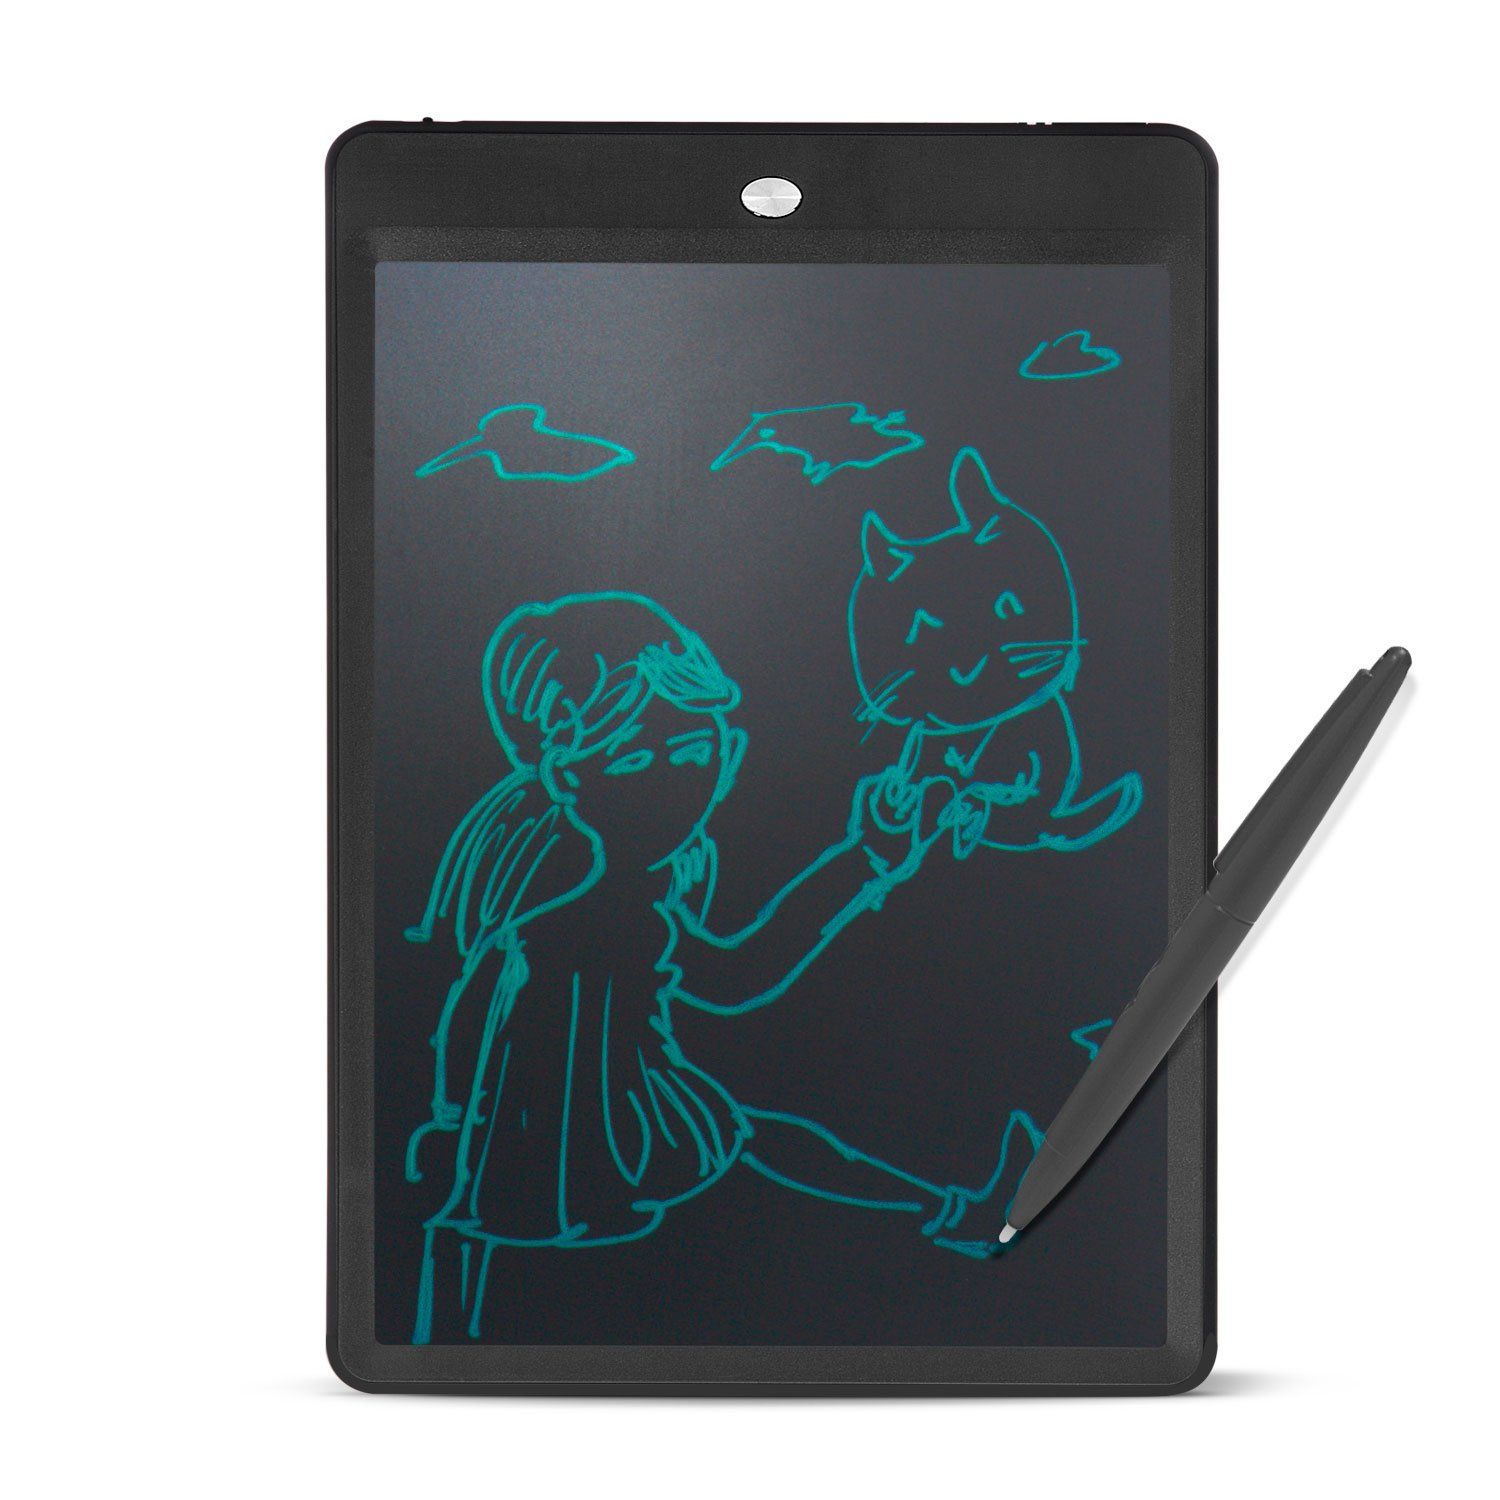 Kids LCD Writing Tablet, 10 Inch Portable Save Electronic Color Graphic eWriter, Handwriting Drawing Board Tablet Pad Note Memo, Office Bulletin Board with Lock & Stylus (Black)